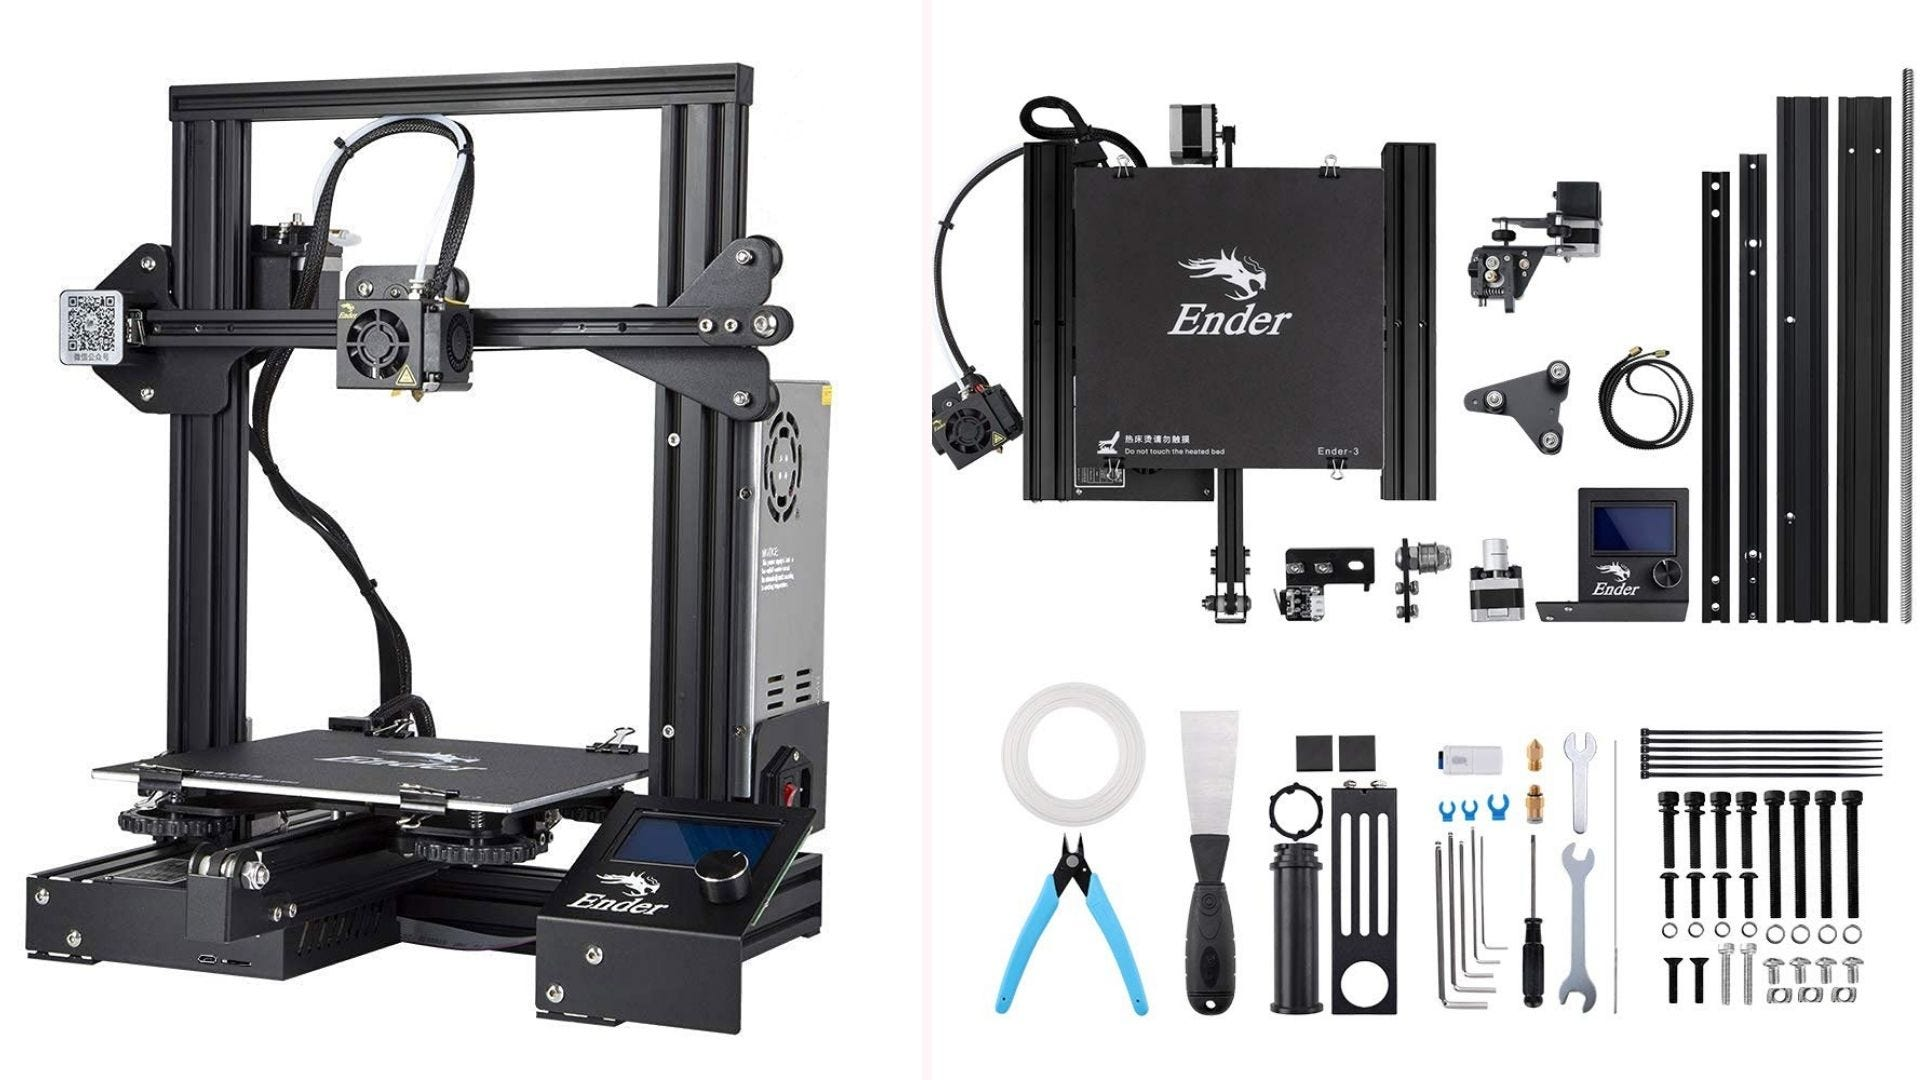 On the left, a FFF 3D printer. On the right, an assortment of tools and equipment.